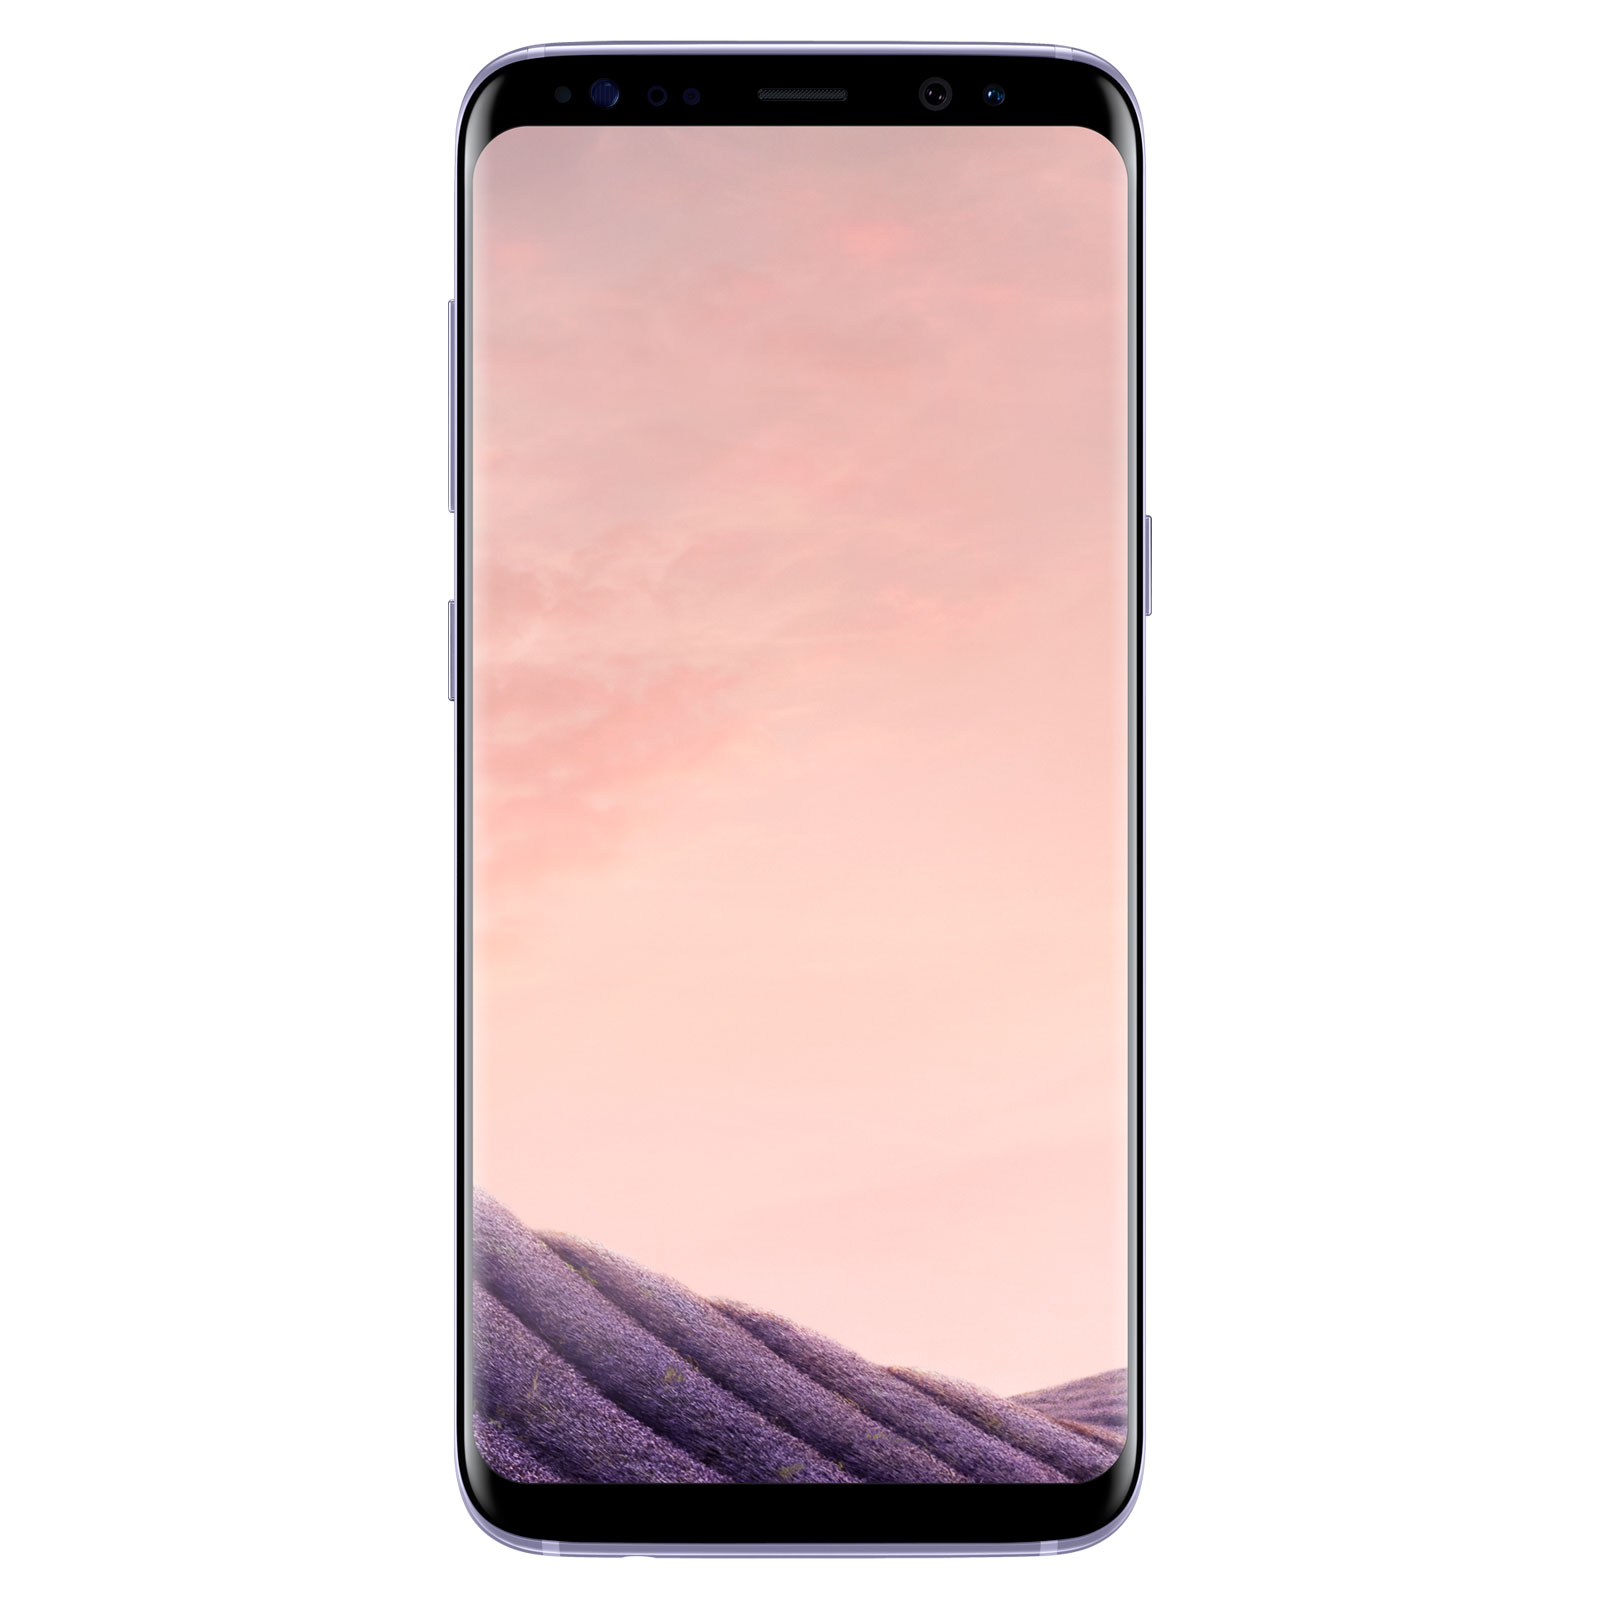 "Mobile & smartphone Samsung Galaxy S8 SM-G950F Orchidée 64 Go Smartphone 4G-LTE Advanced IP68 - Exynos 8895 8-Core 2.3 Ghz - RAM 4 Go - Ecran tactile 5.8"" 1440 x 2960 - 64 Go - NFC/Bluetooth 5.0 - 3000 mAh - Android 7.0"